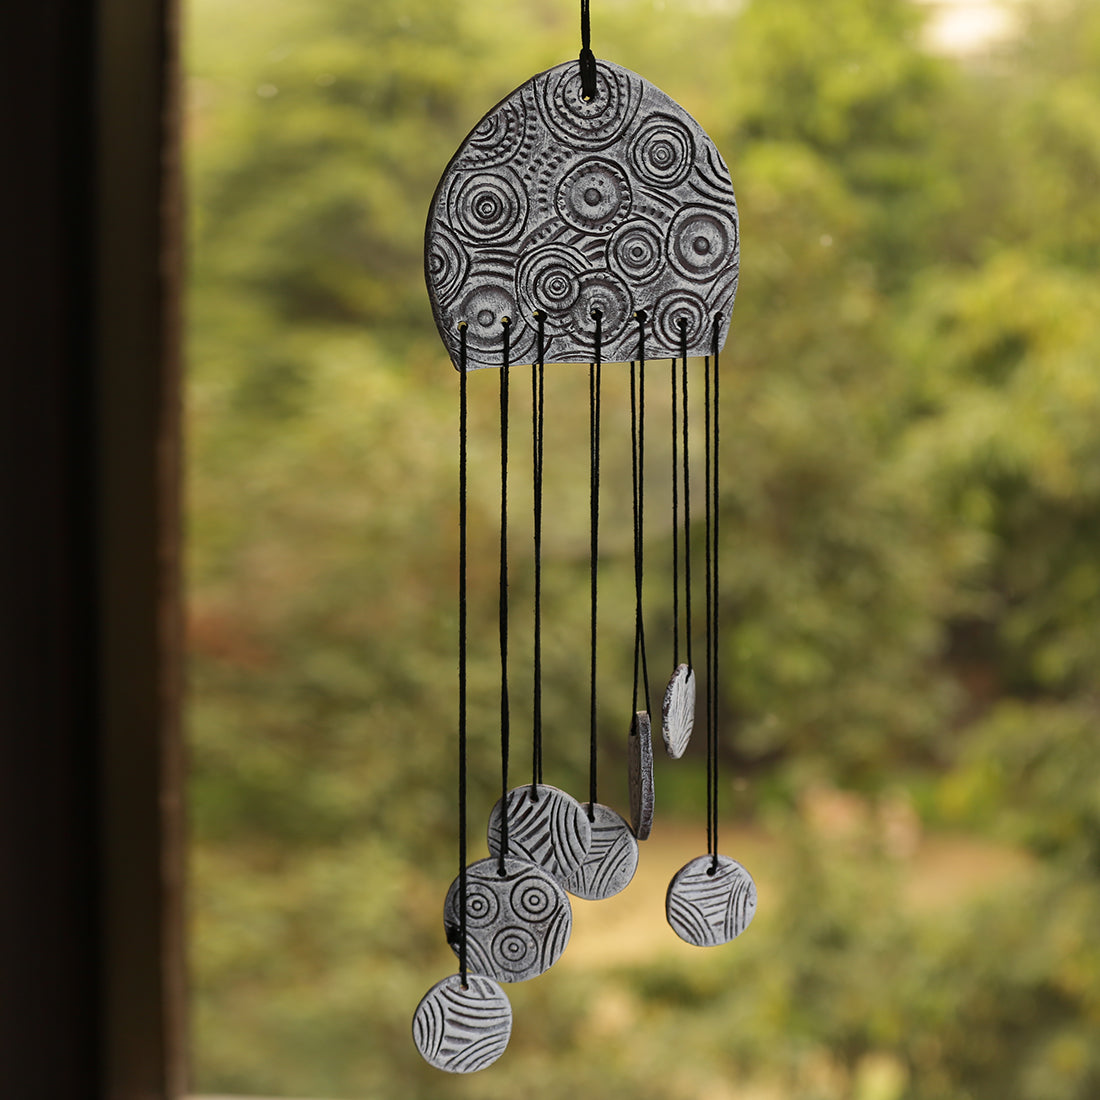 """Ocean Breeze"" Handmade & Hand-Painted Garden Decorative Hanging & Wind Chime In Terracotta"